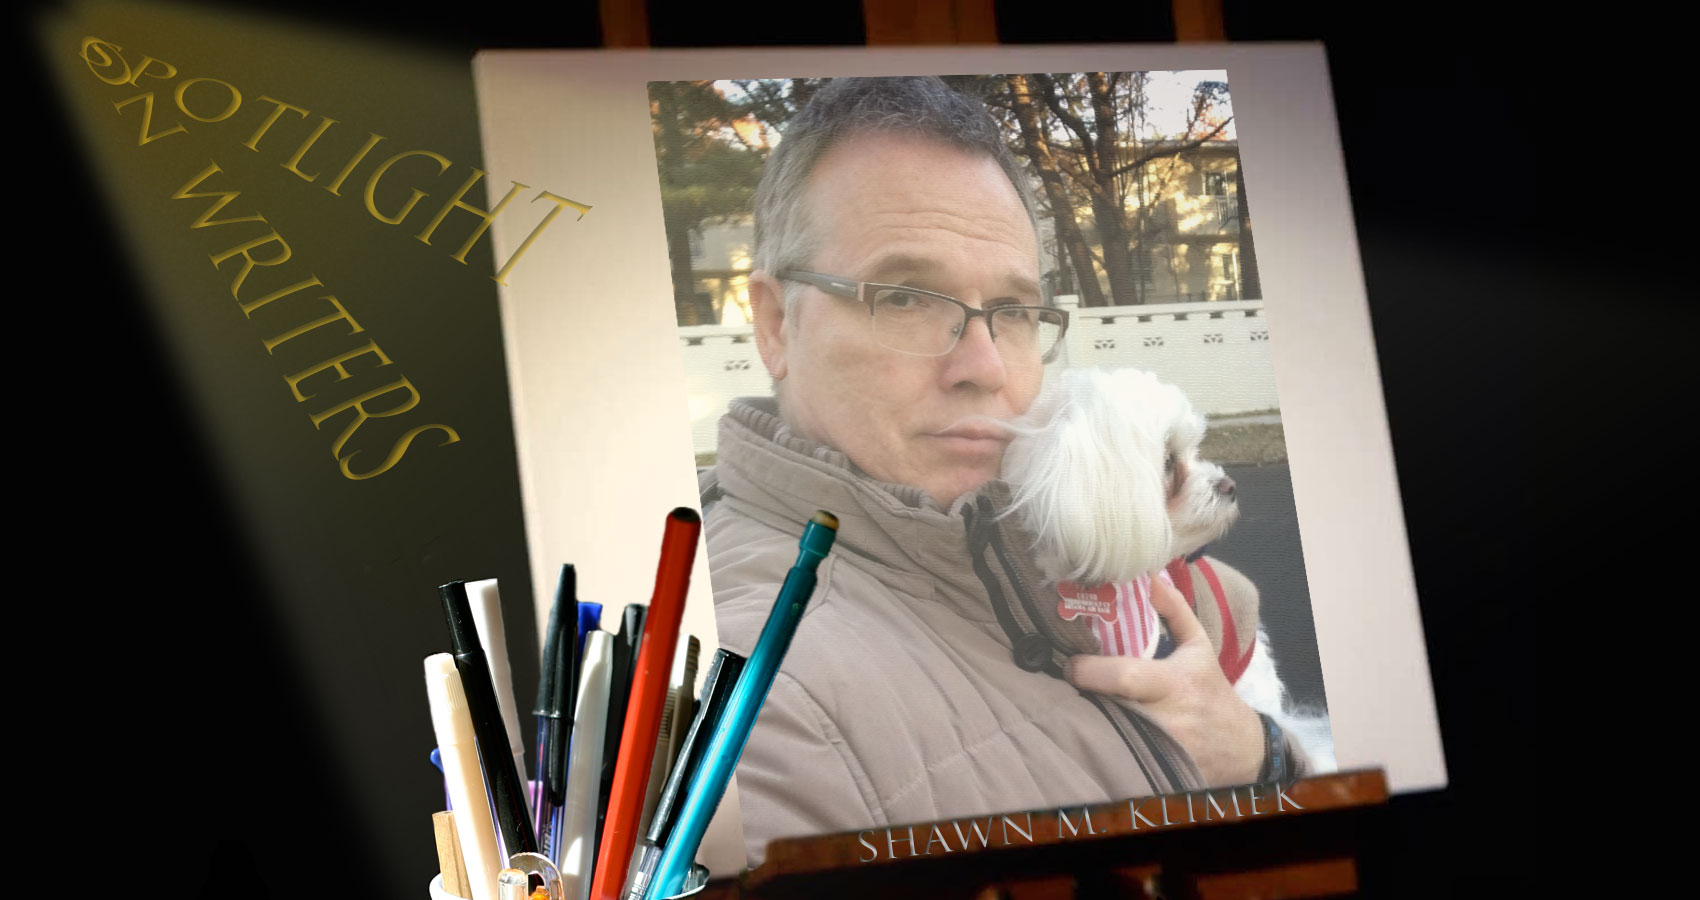 Spotlight On Writers - Shawn M. Klimek, an interview at Spillwords.com